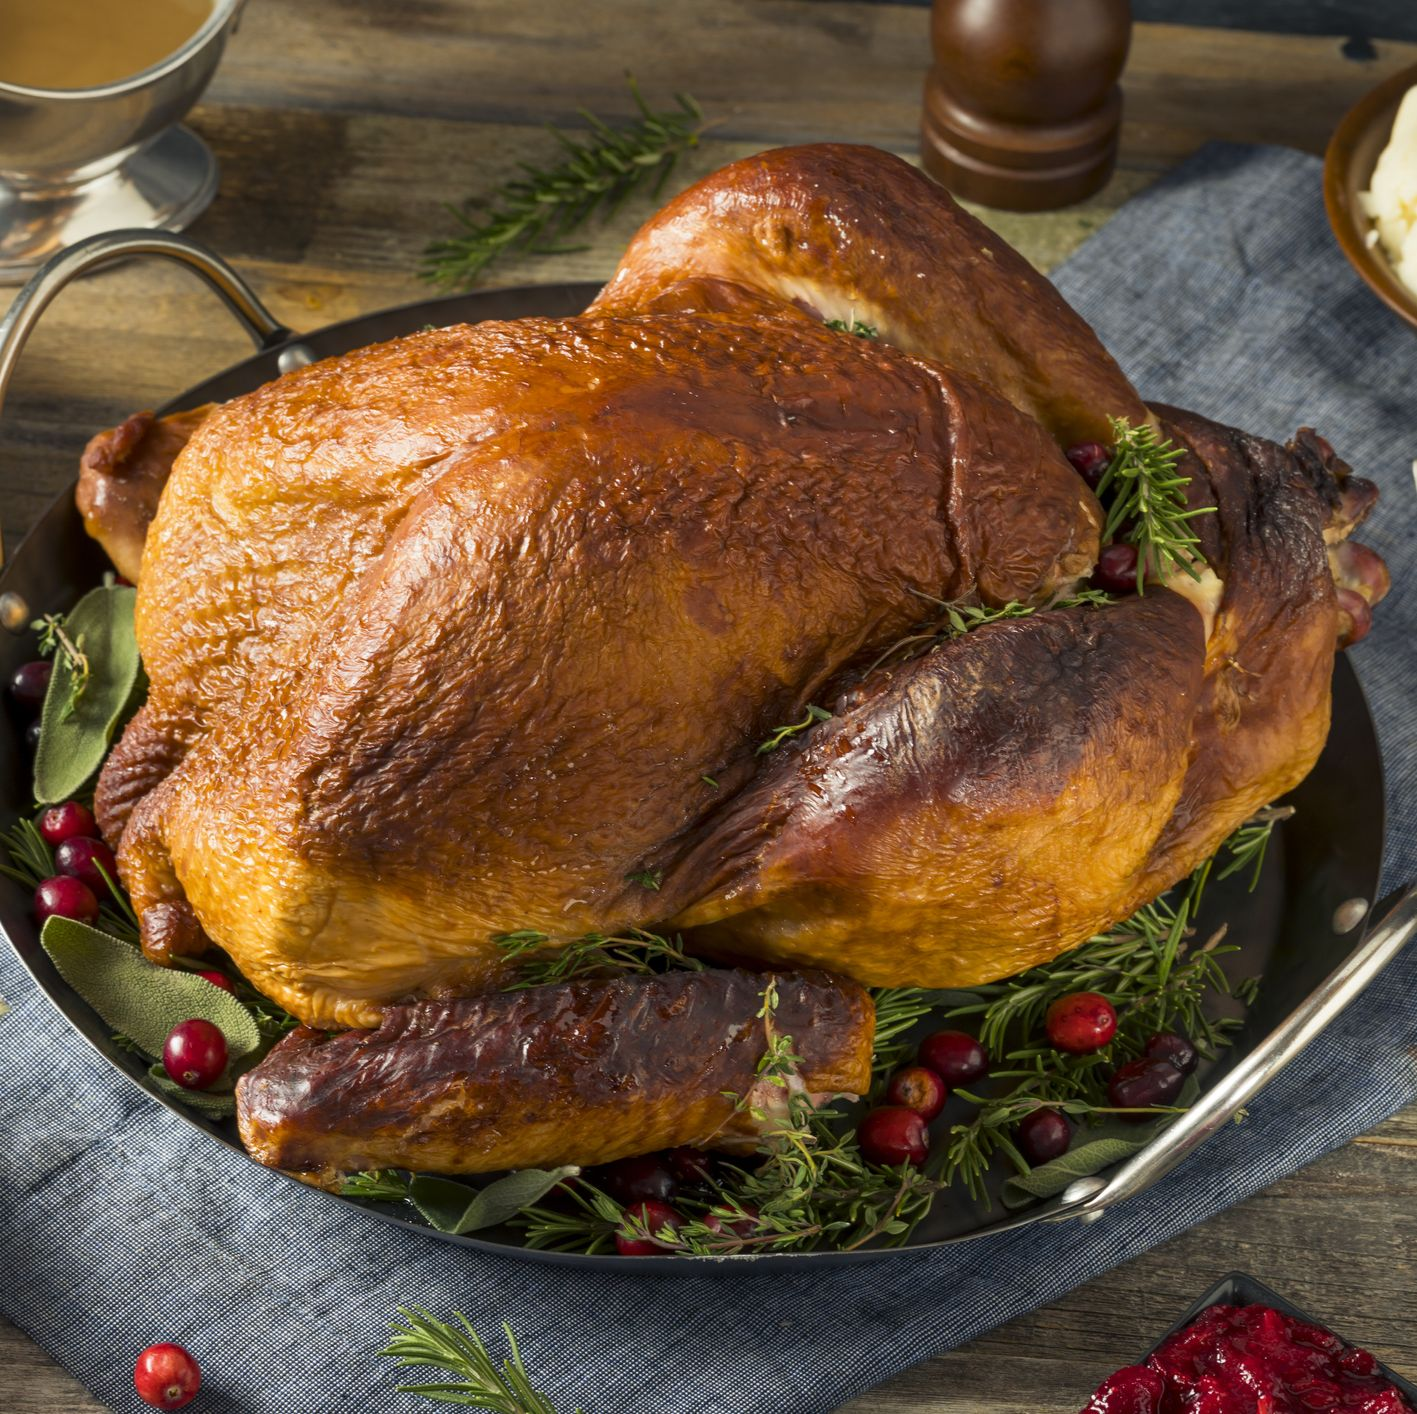 Where to Order a Thanksgiving Turkey Online